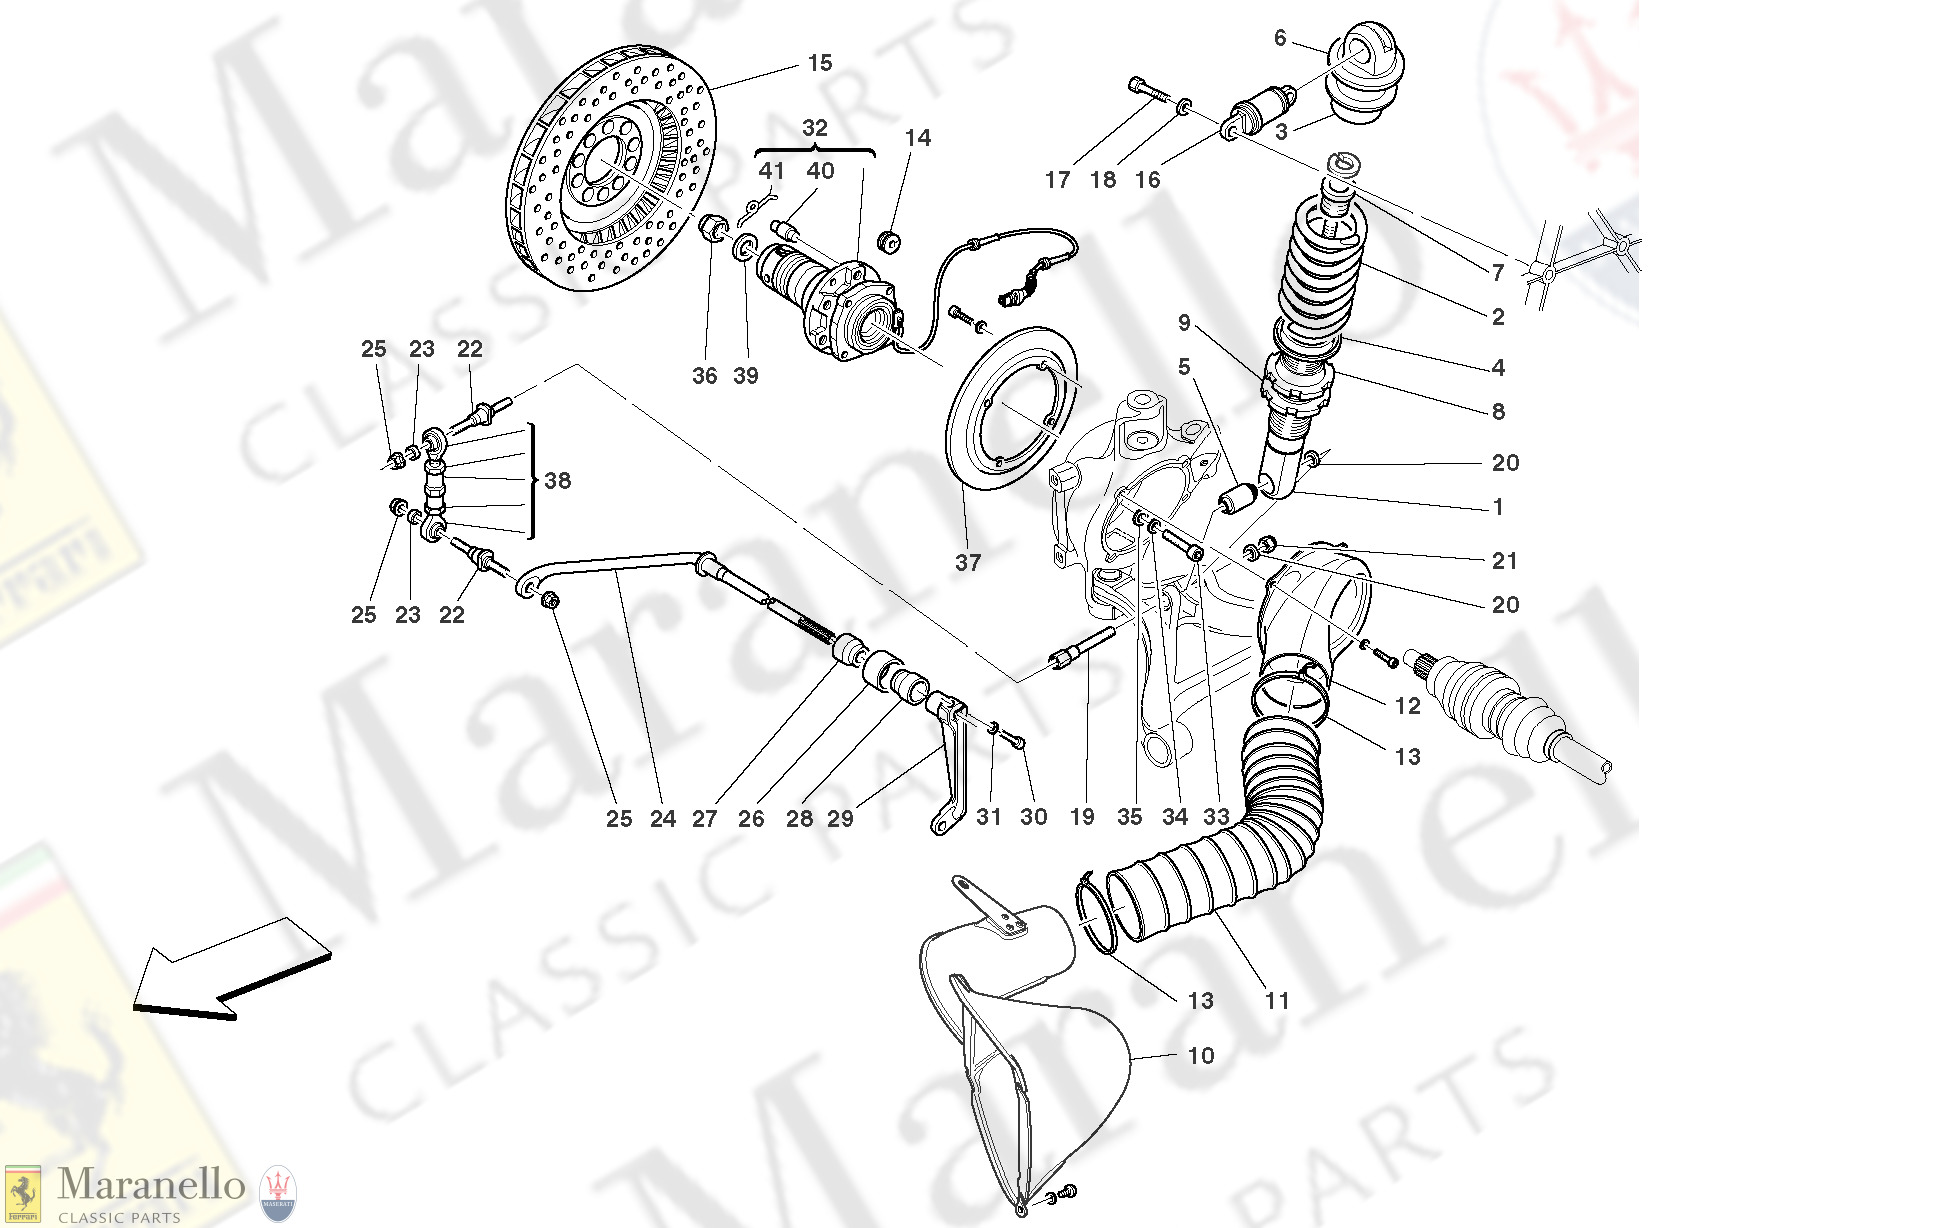 039 - Rear Suspension - Shock Absorber And Brake Disc